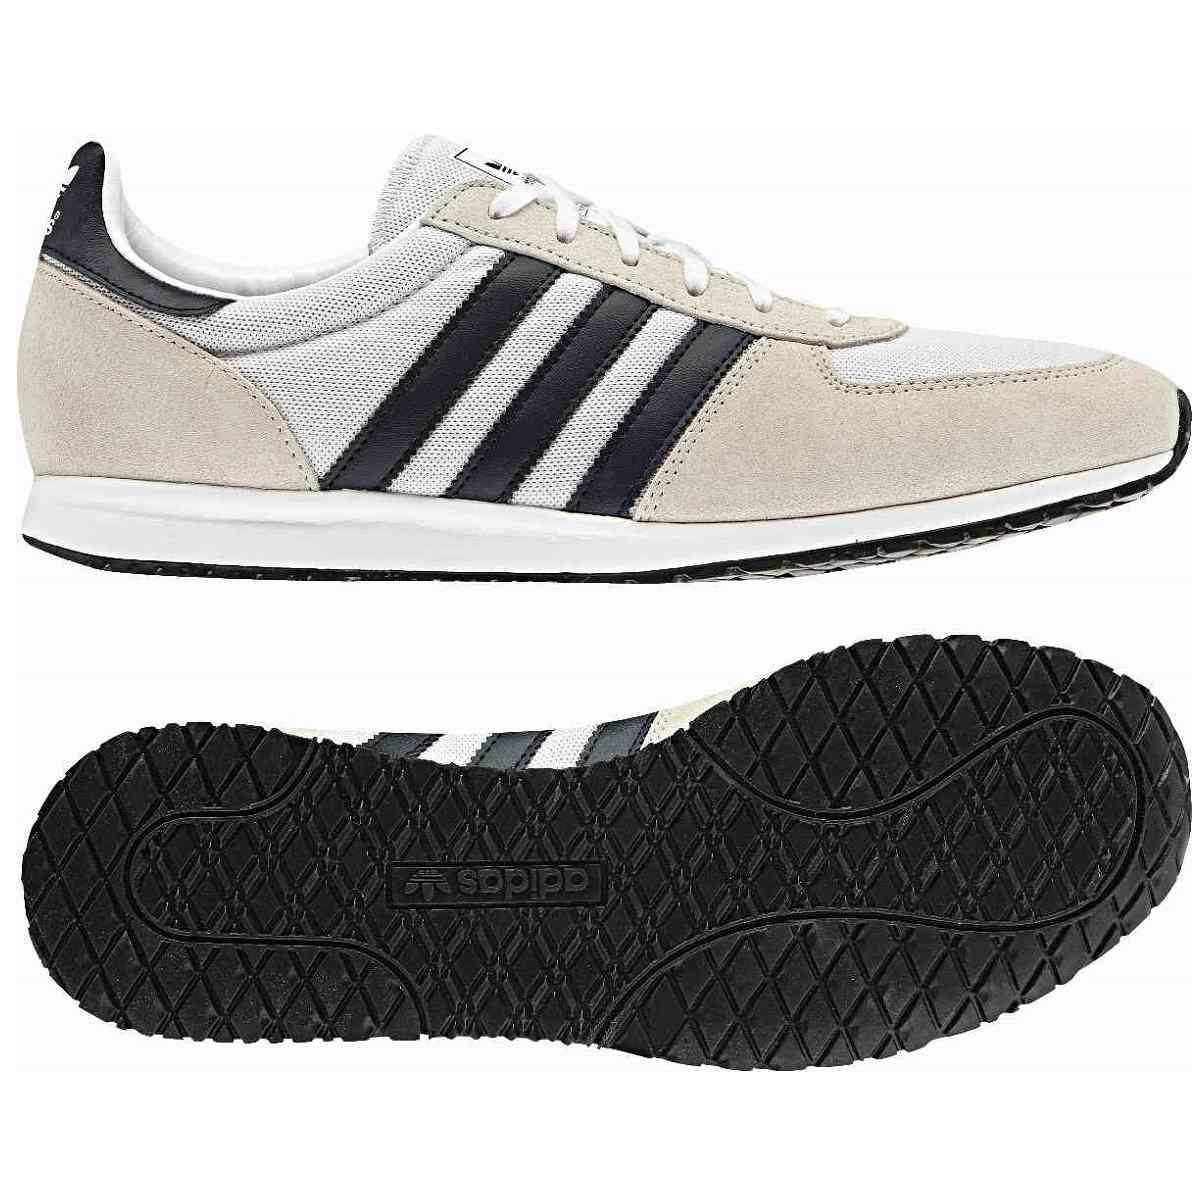 Adidas Adistar Racer Shoes Sneakers Trainers Women Men ...